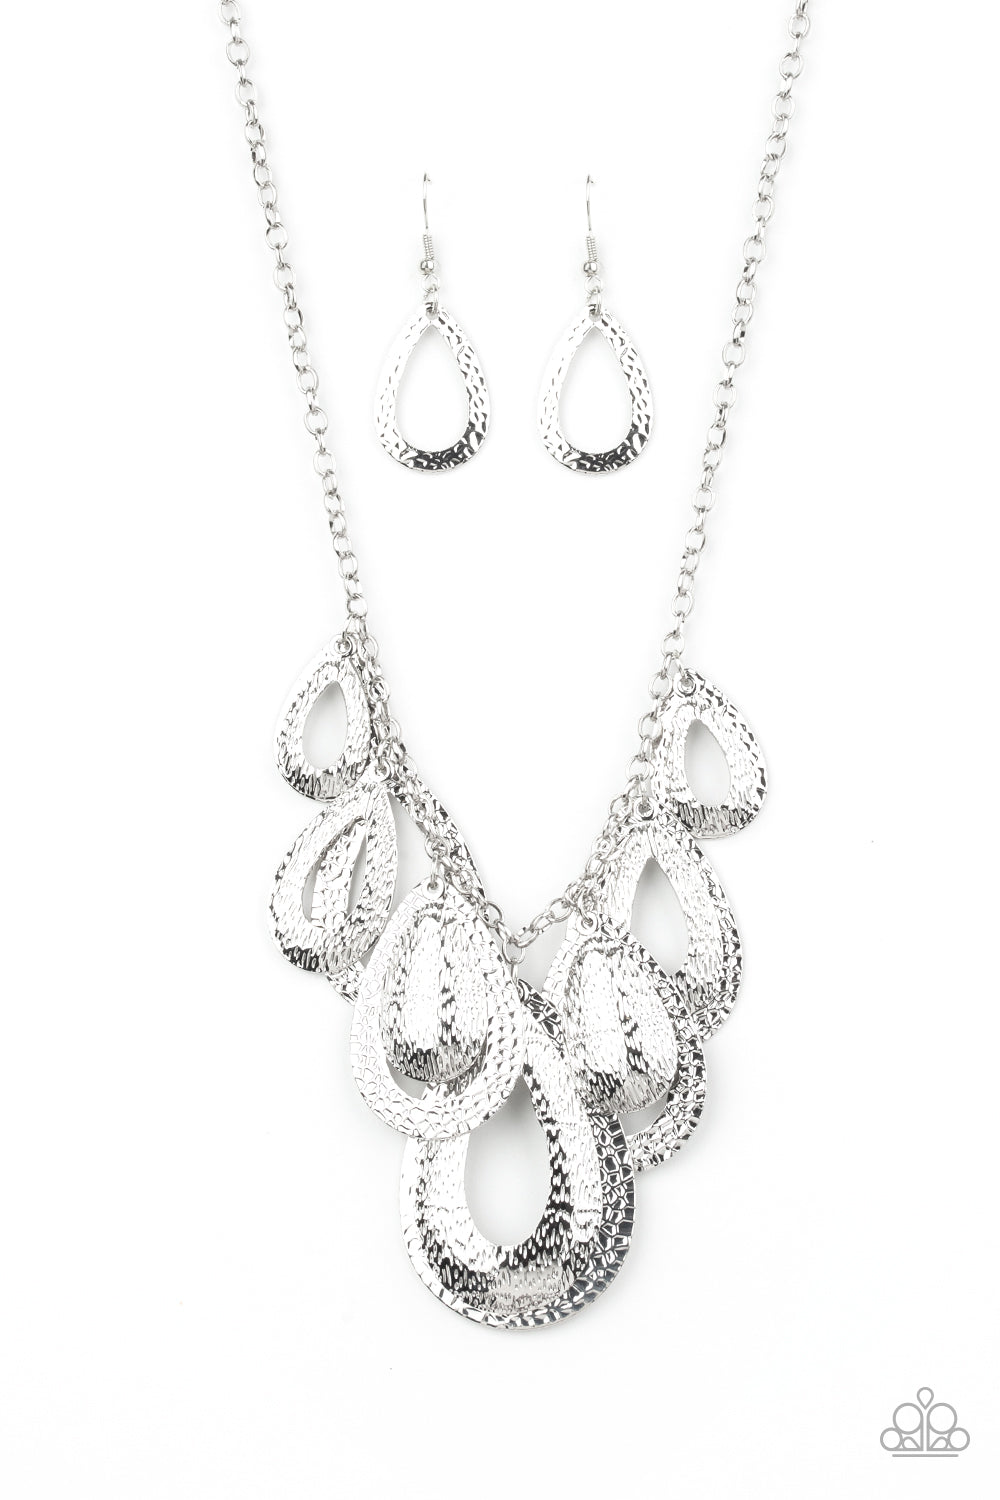 Teardrop Tempest Silver Necklace